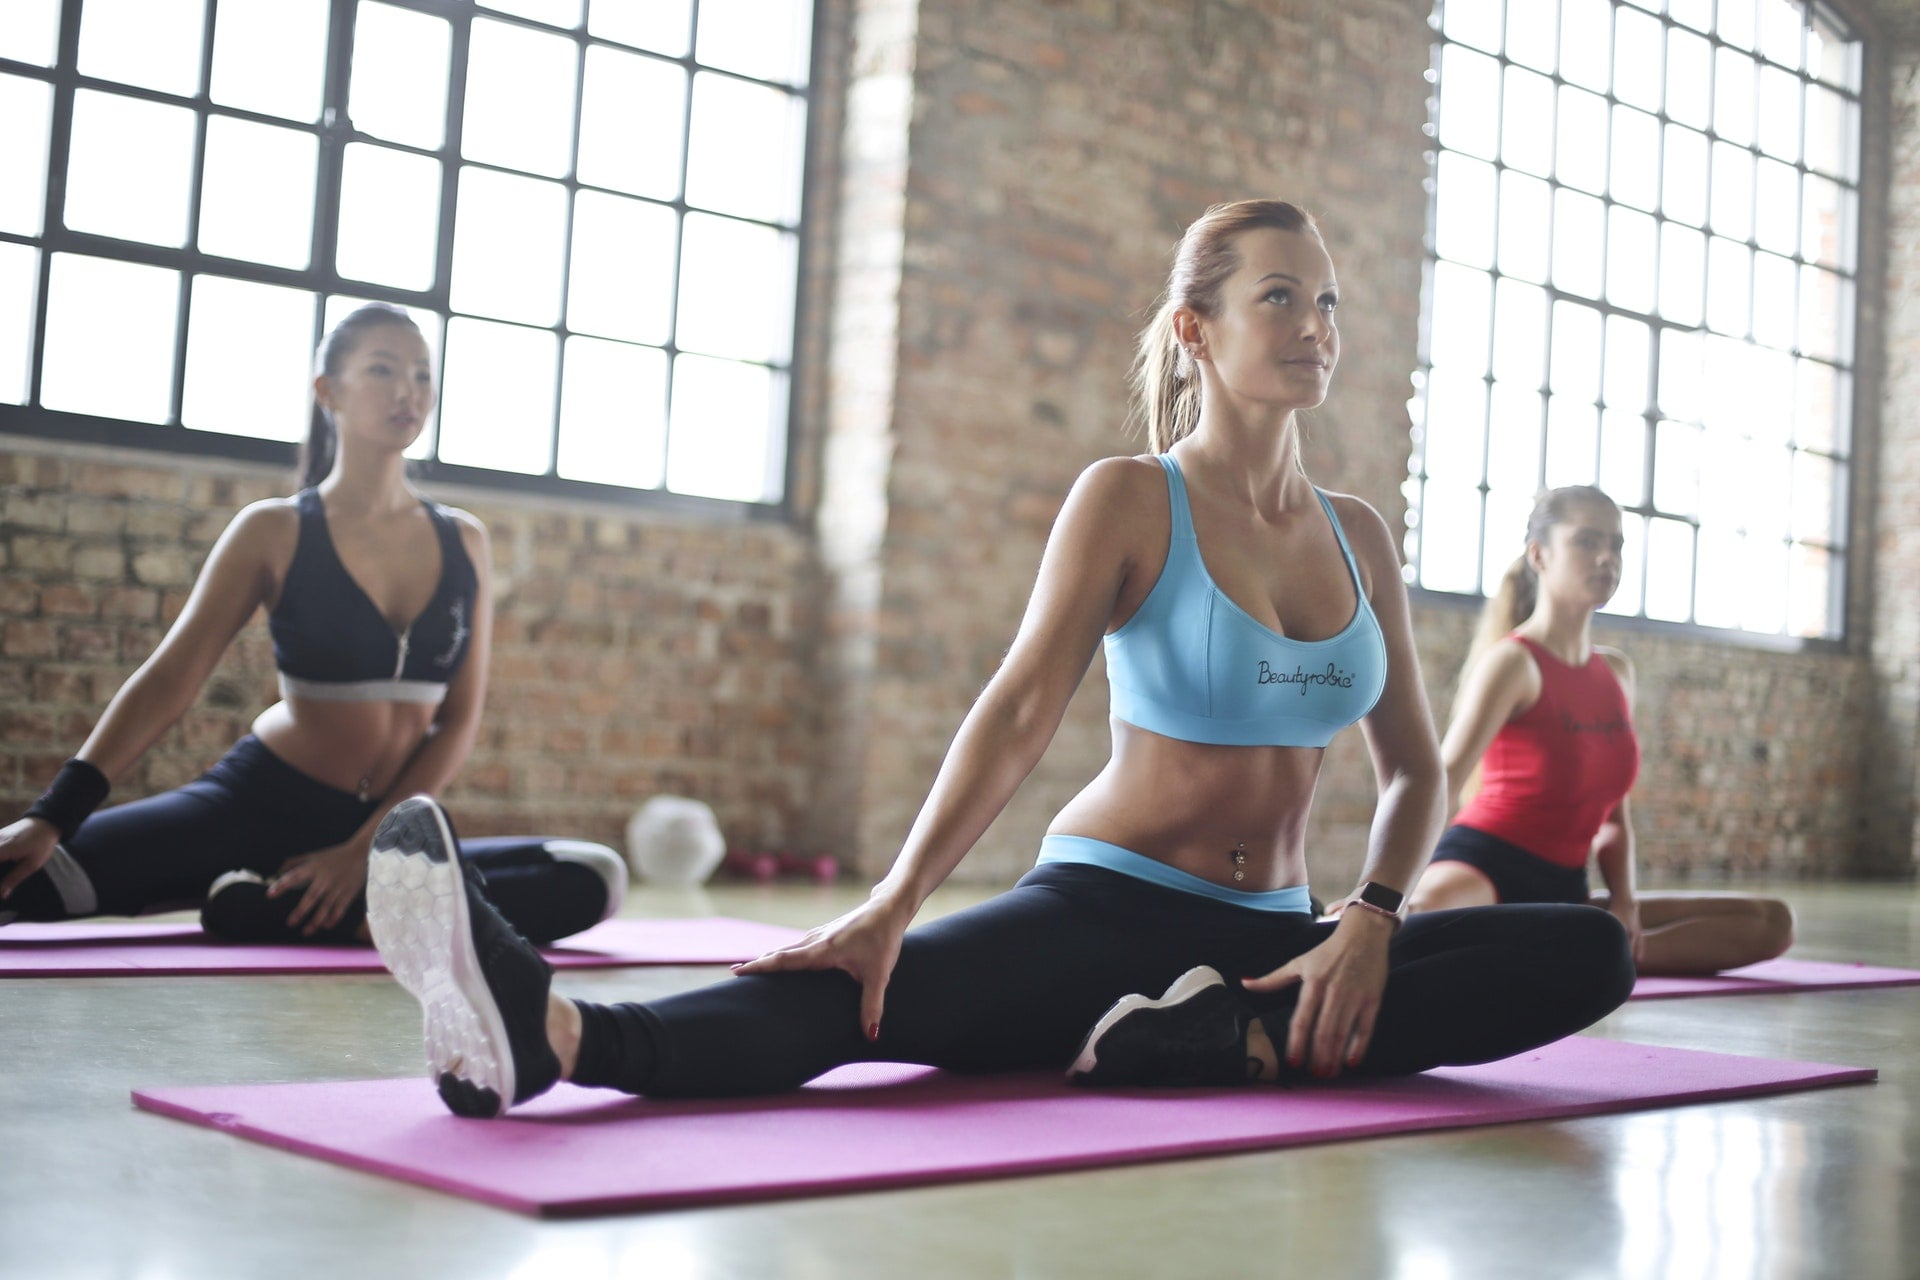 7 idées de Exercices pour jambe | exercice, muscler cuisses, muscler les jambes